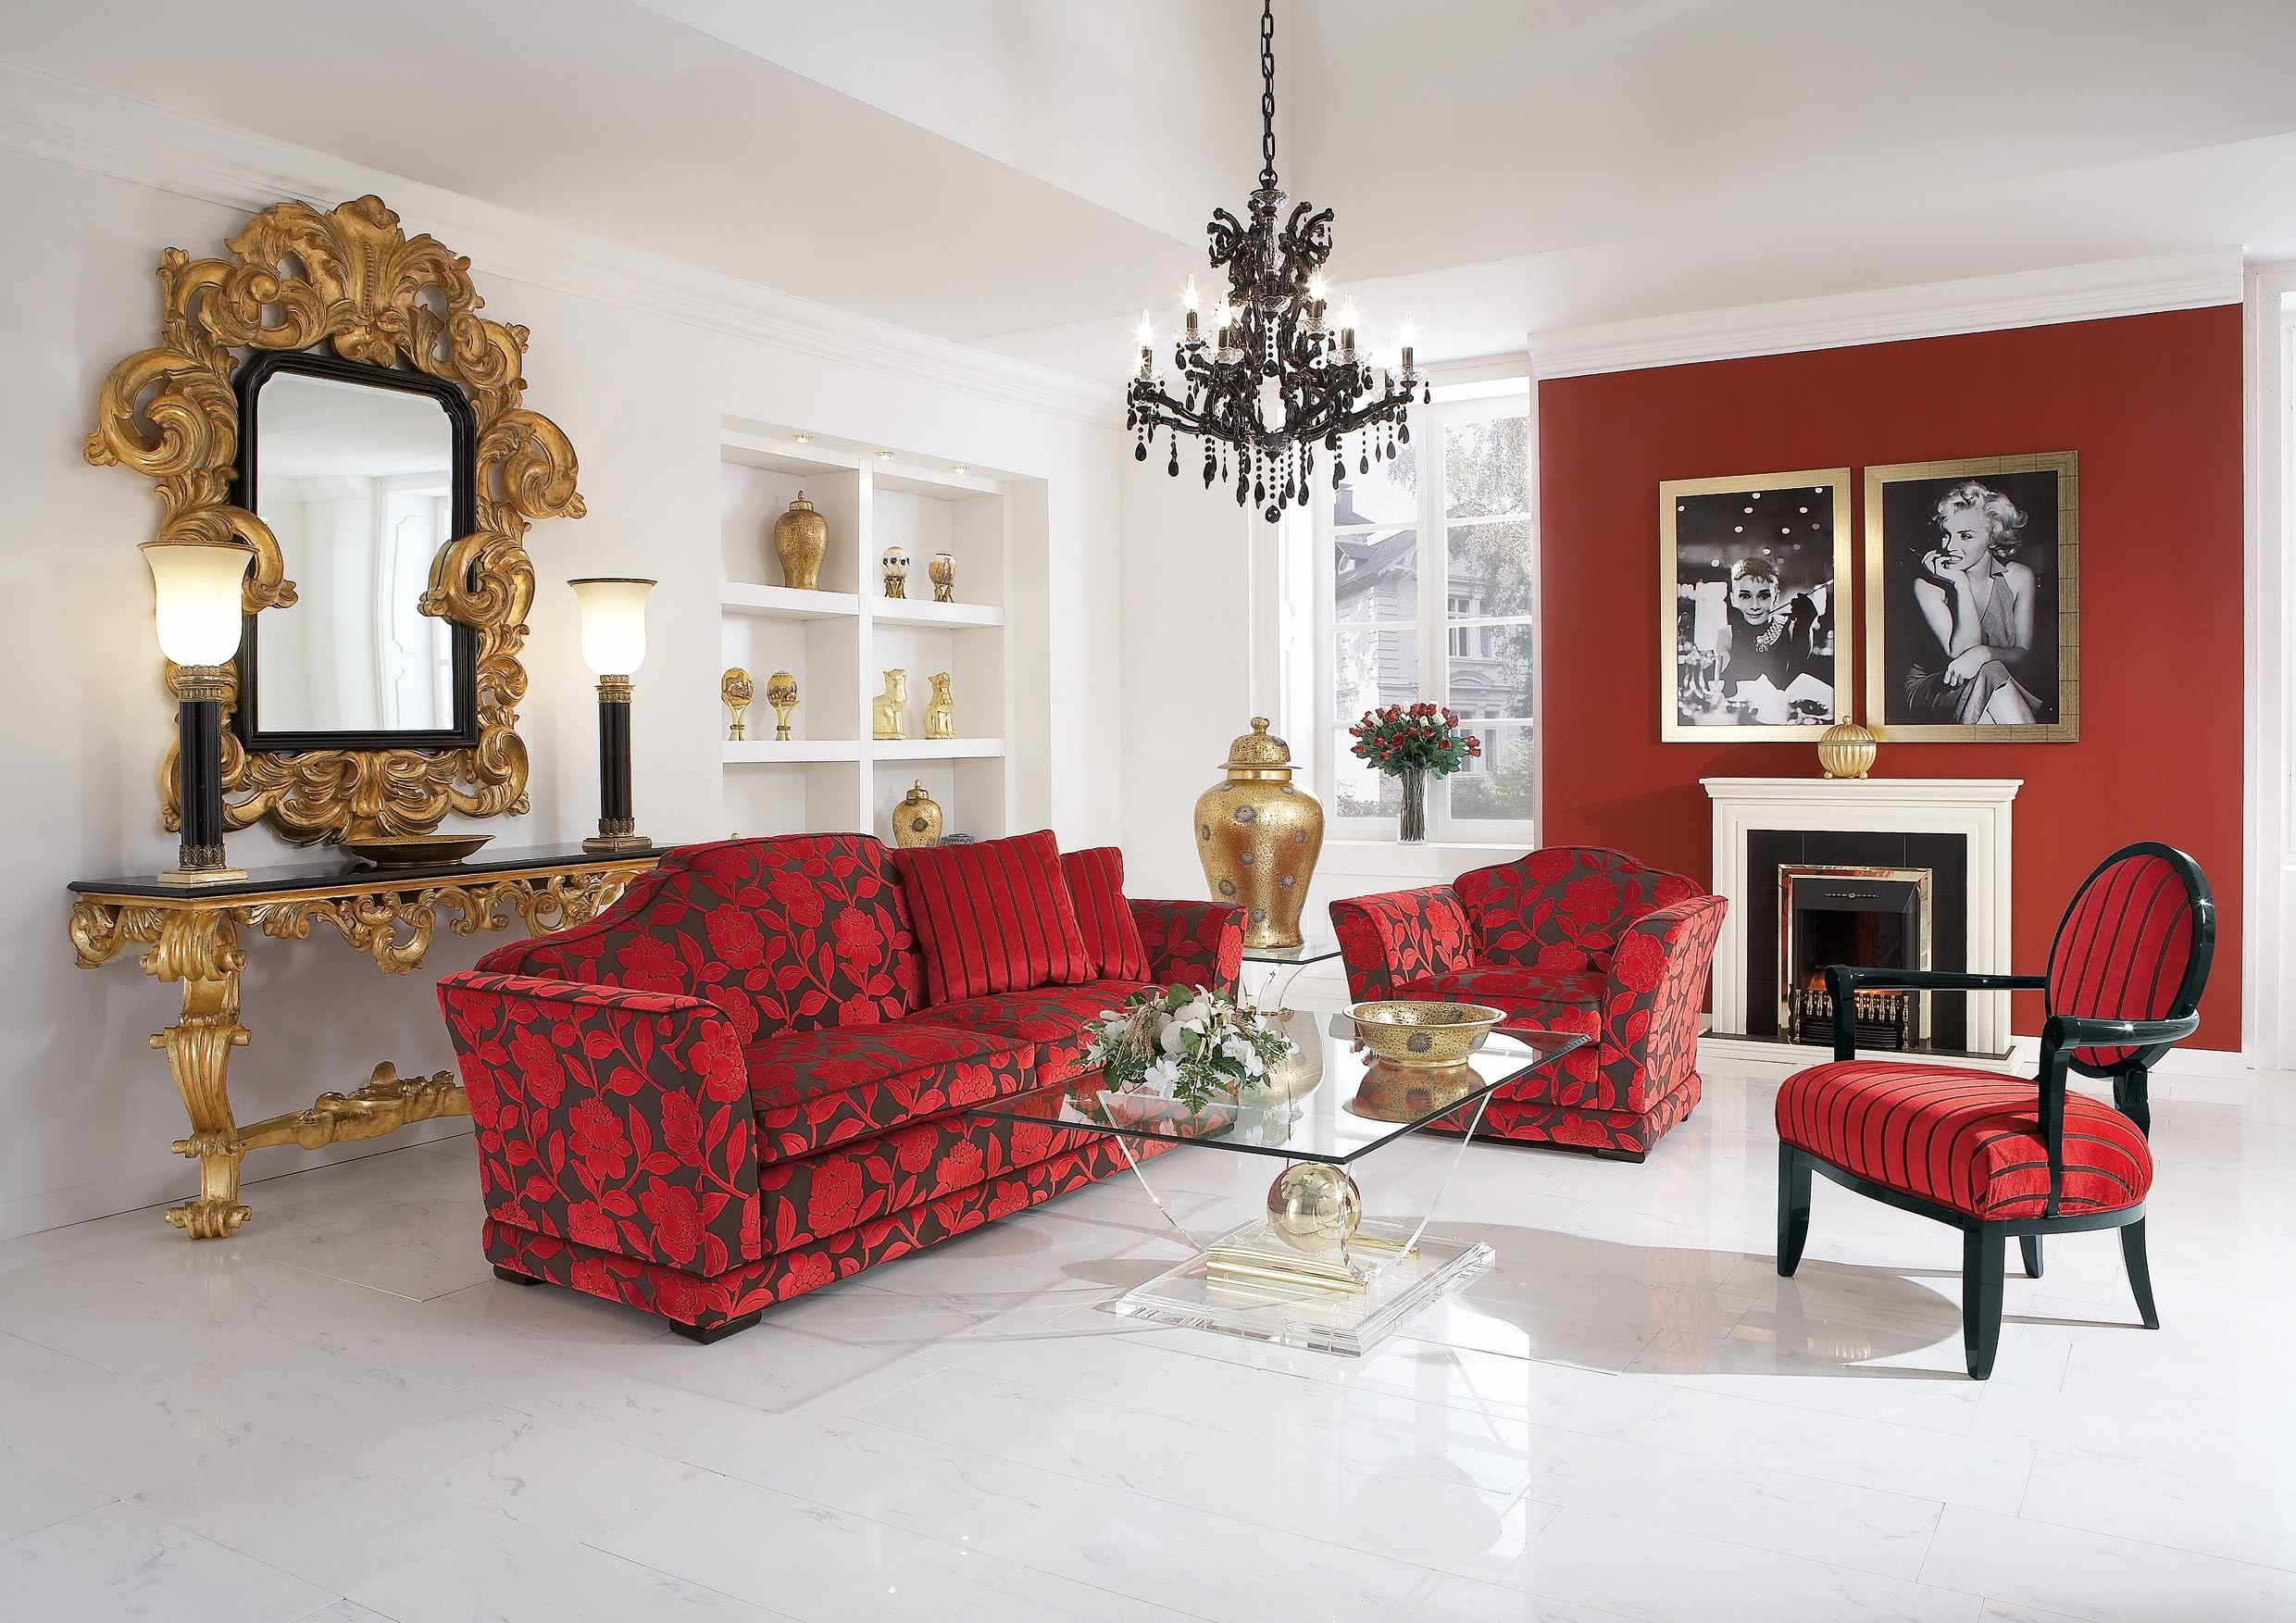 red living room of The Color red article